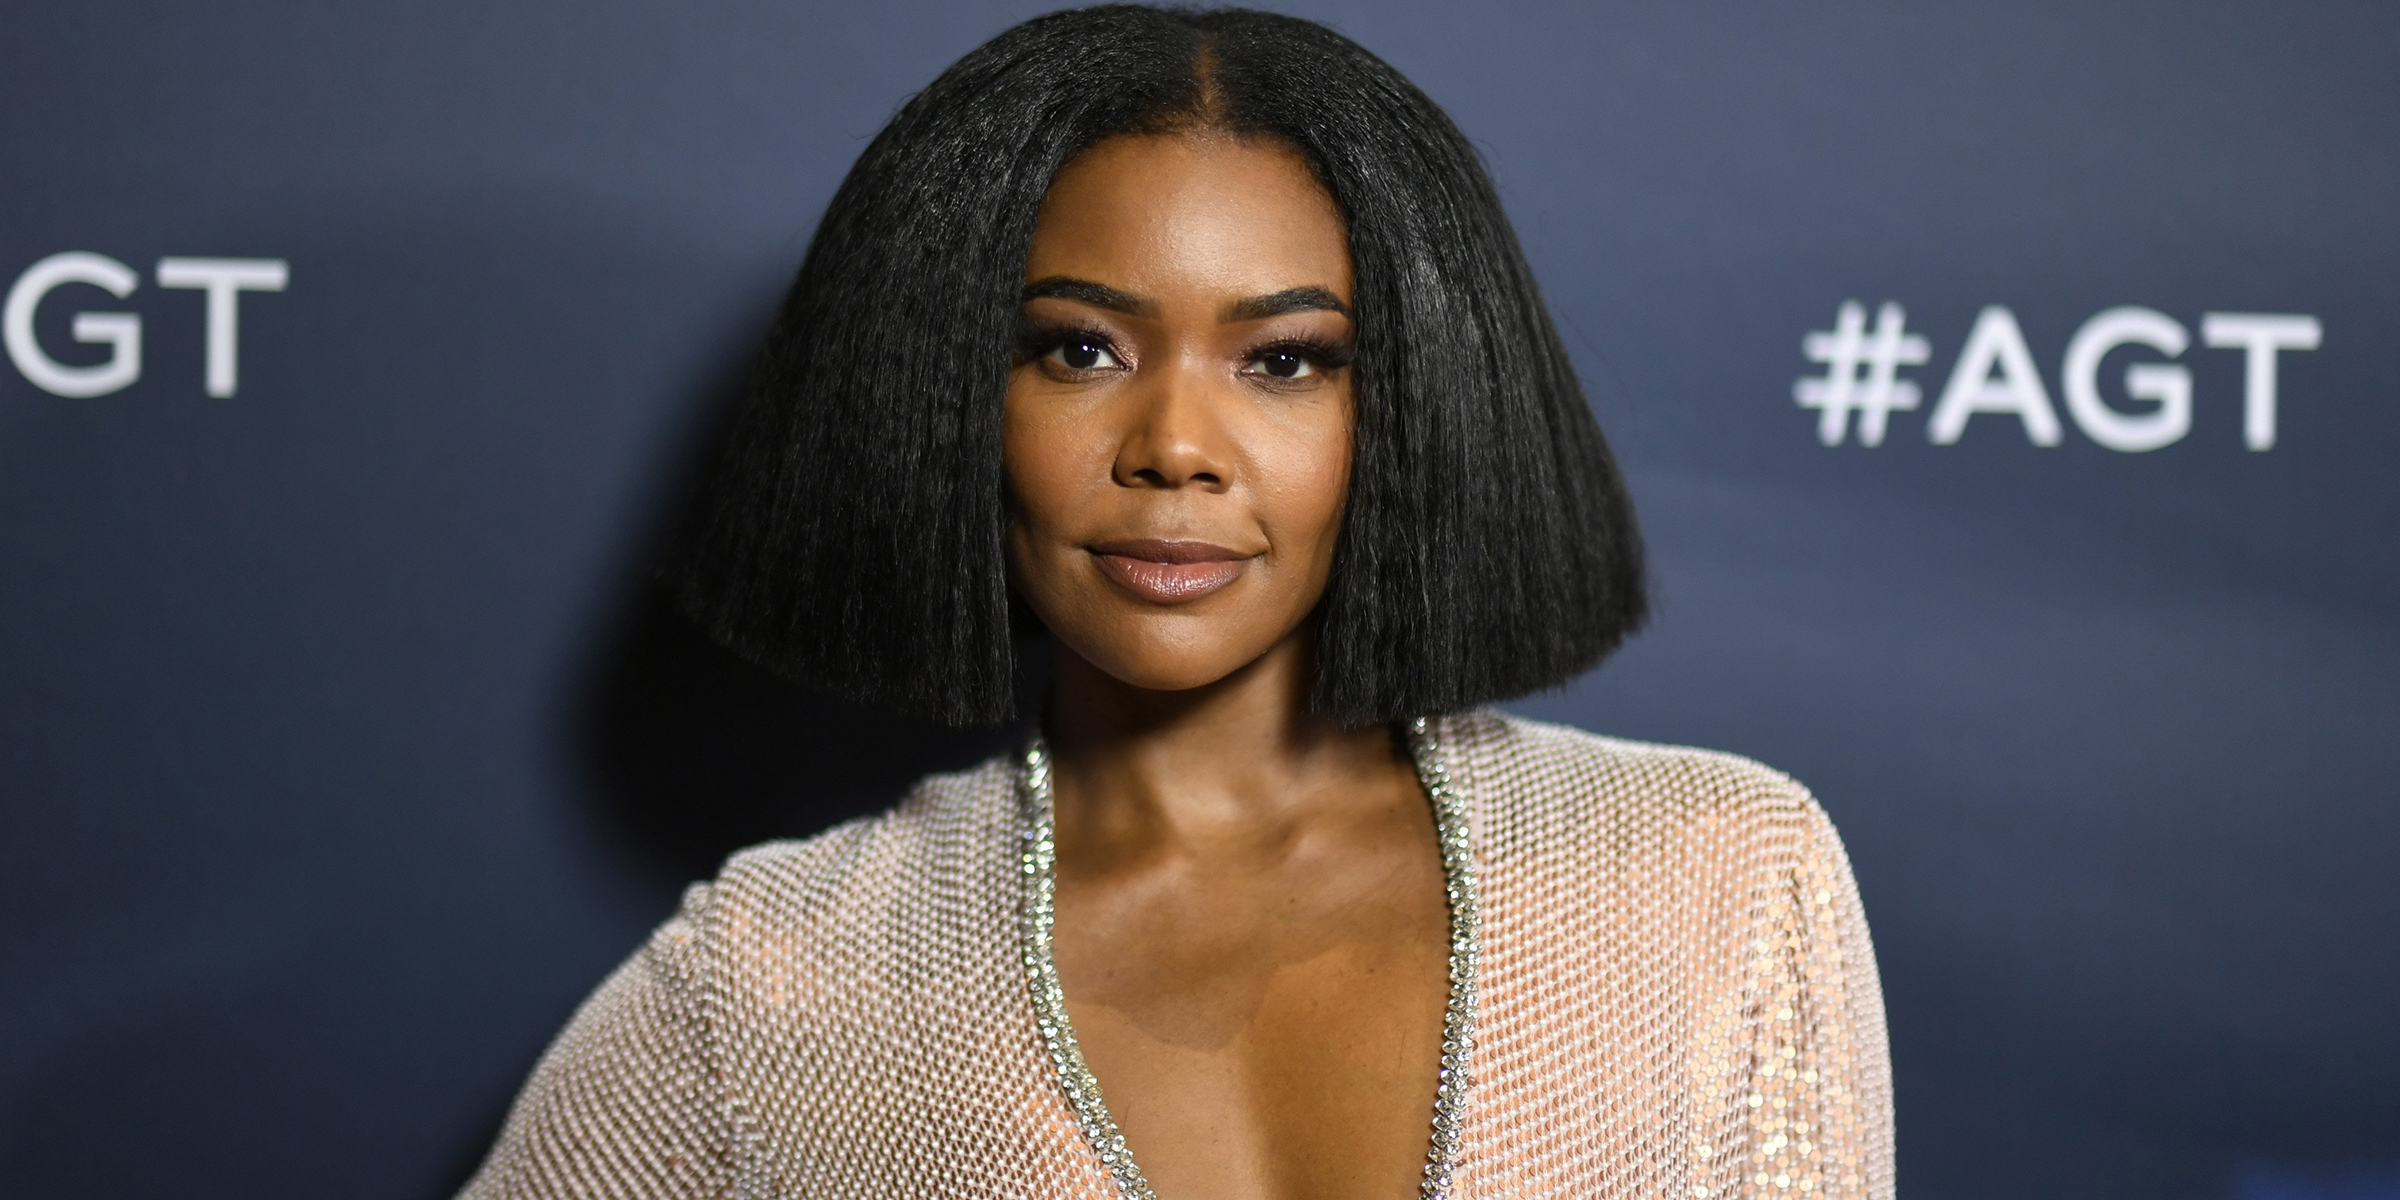 Gabrielle Union gets pixie haircut, shows off her natural curls